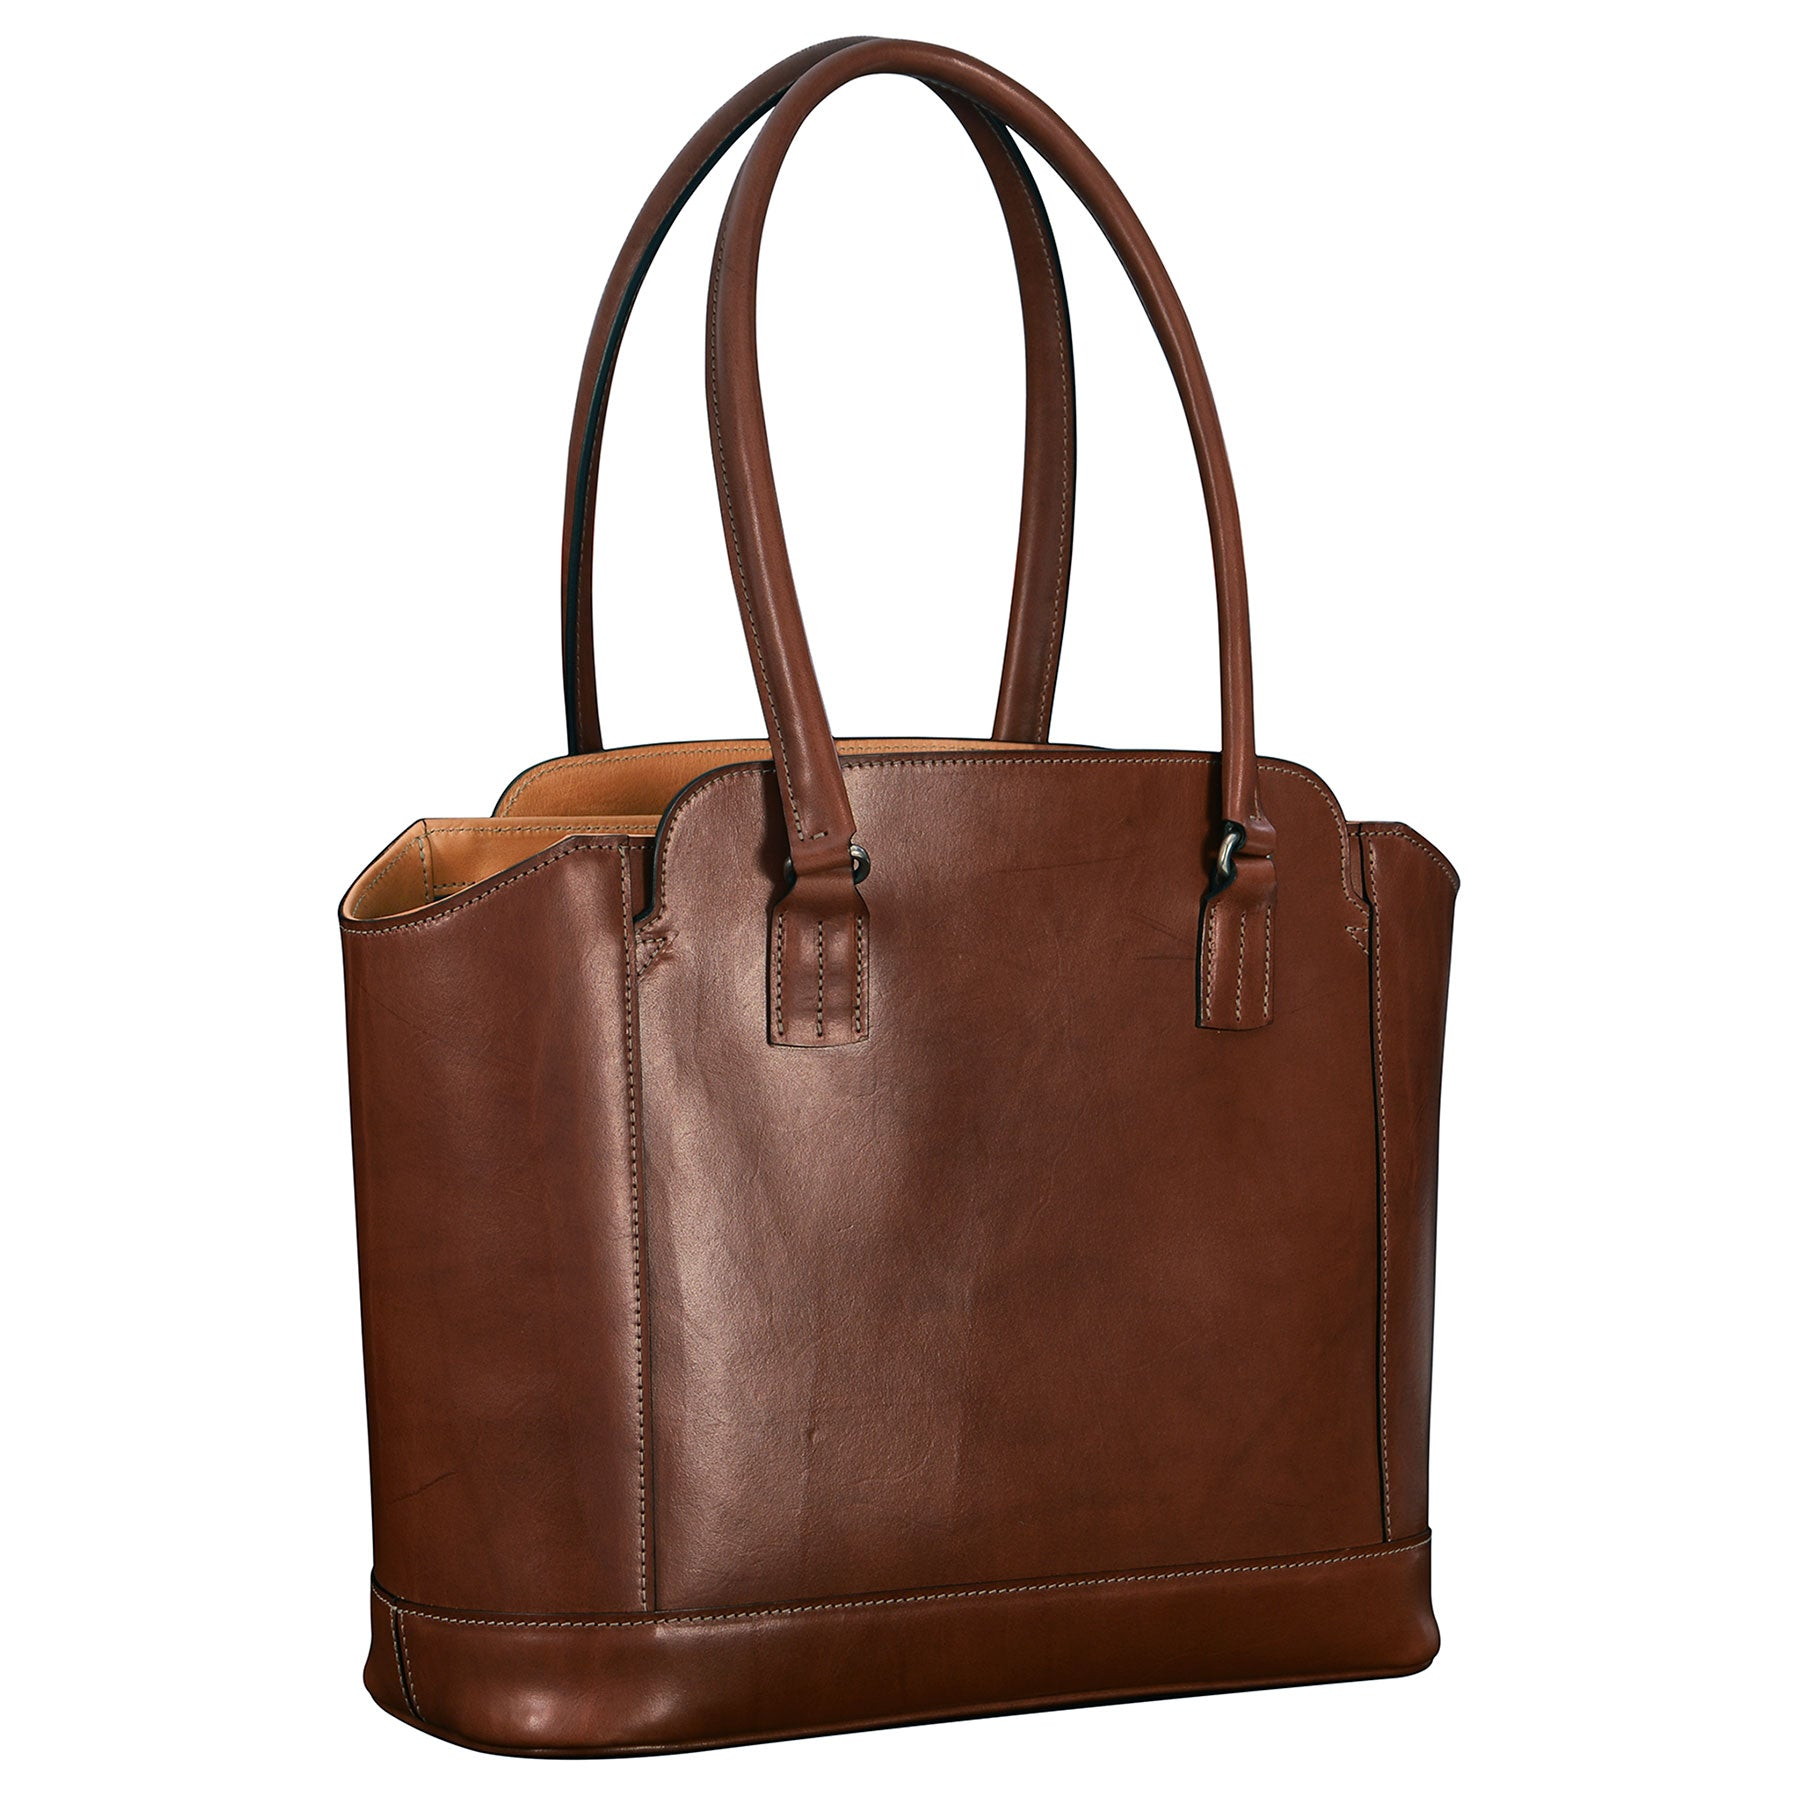 City Tote: Hand-Burnished Leather